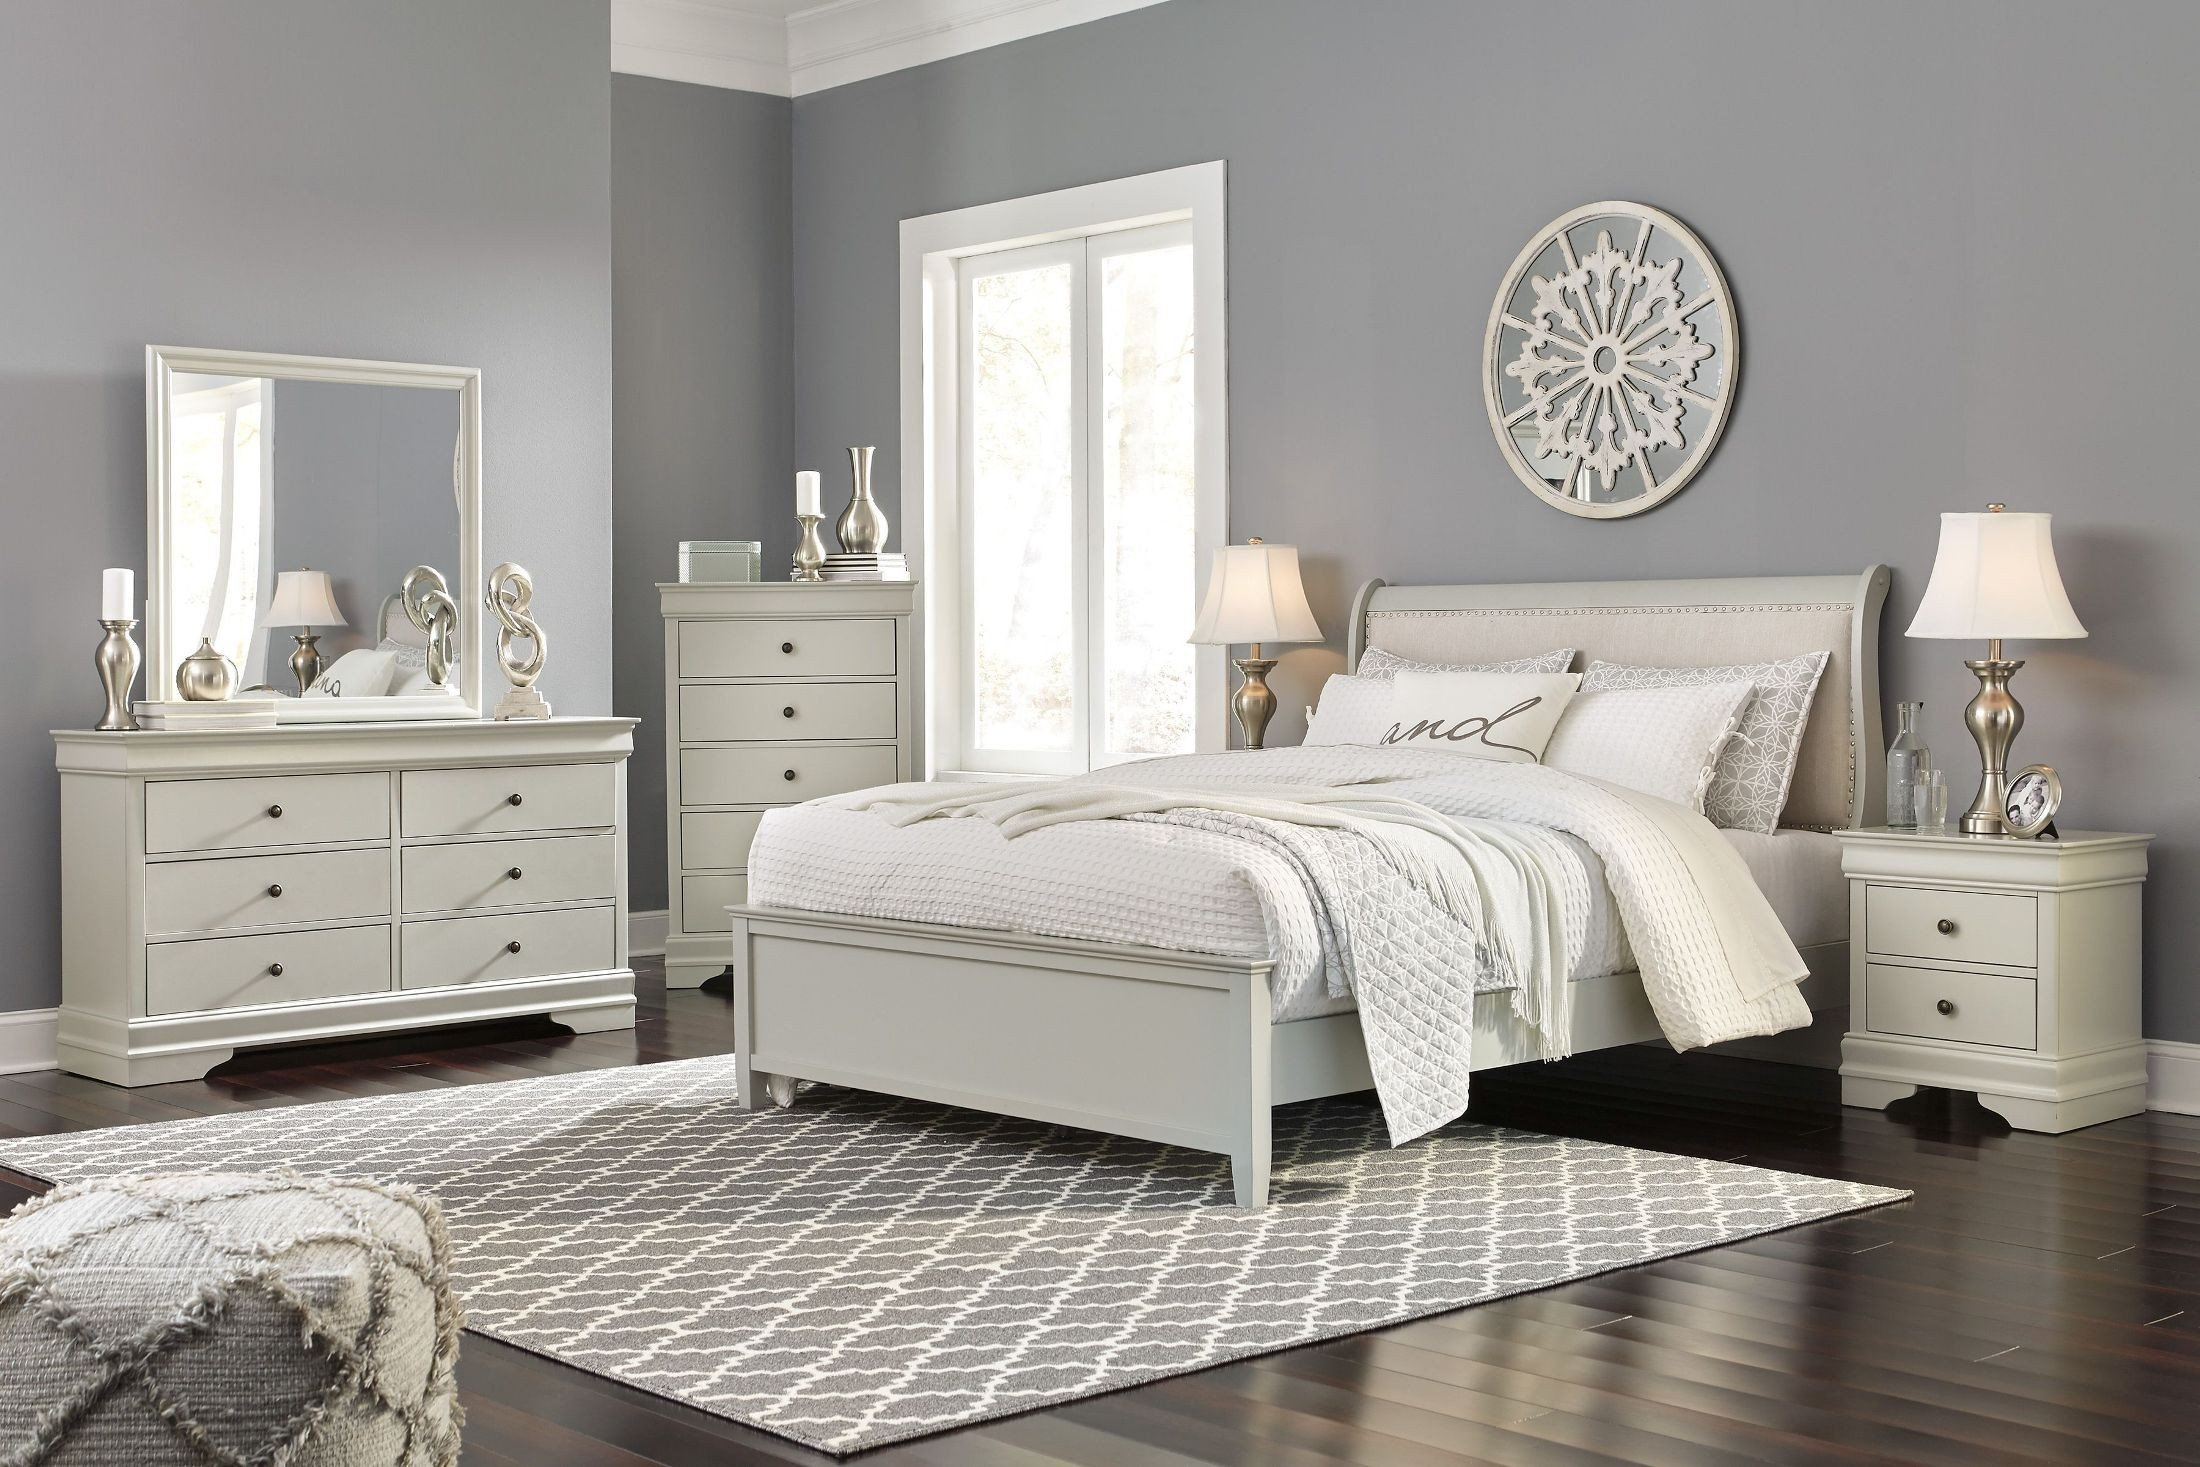 California King Canopy Bedroom Set Luxury Emma Mason Signature Jarred 5 Piece Sleigh Bedroom Set In Gray